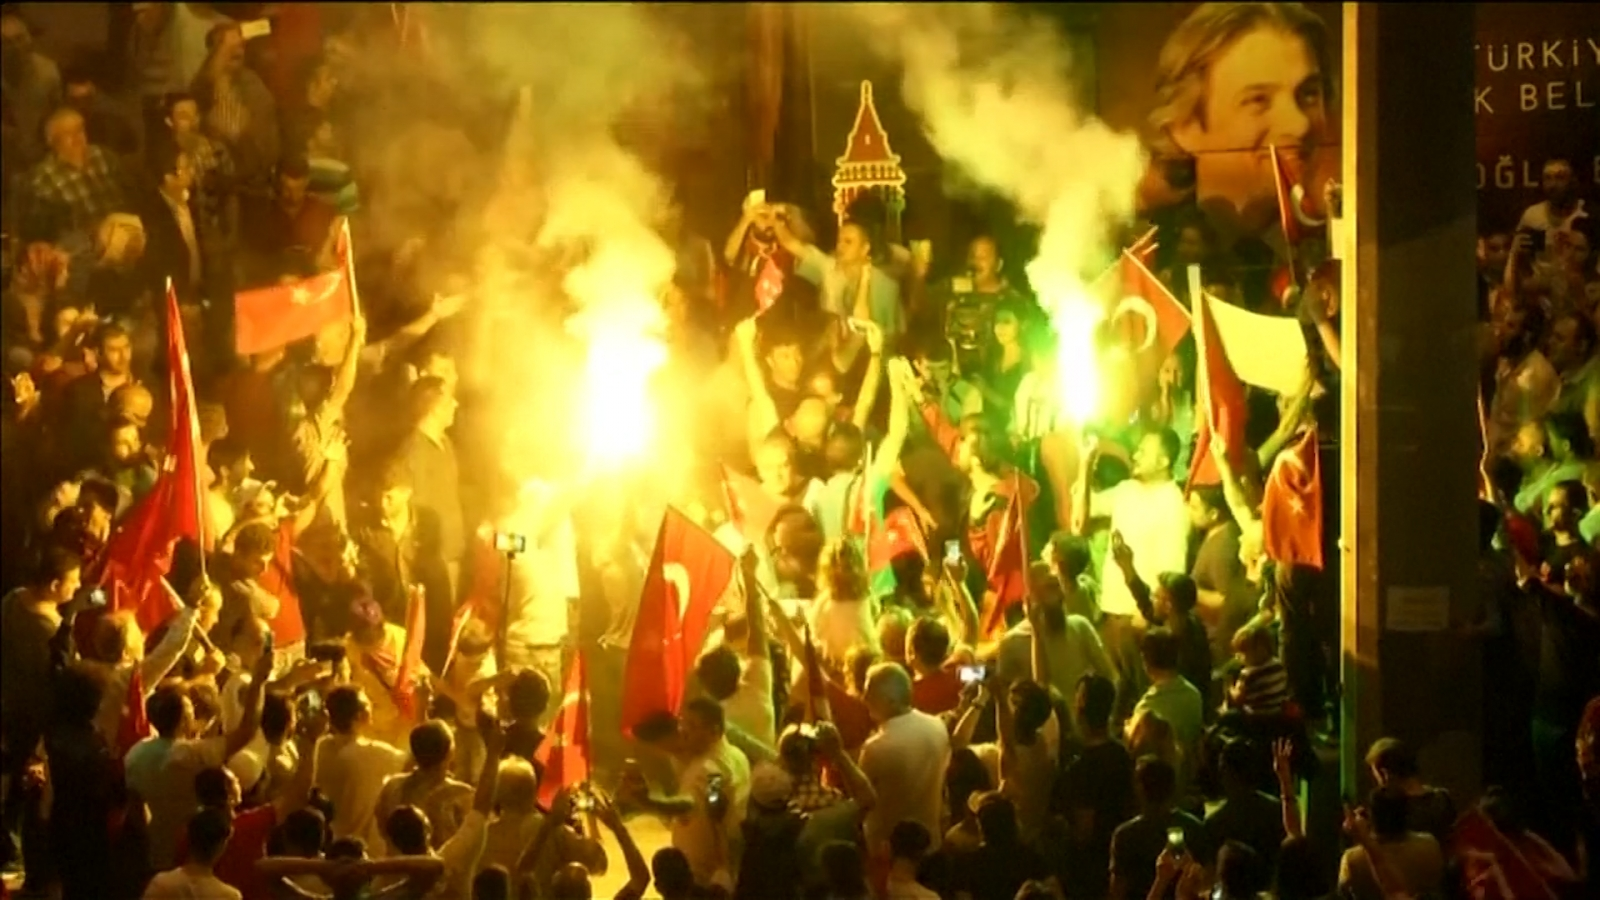 Turkey supporters continue demonstrations